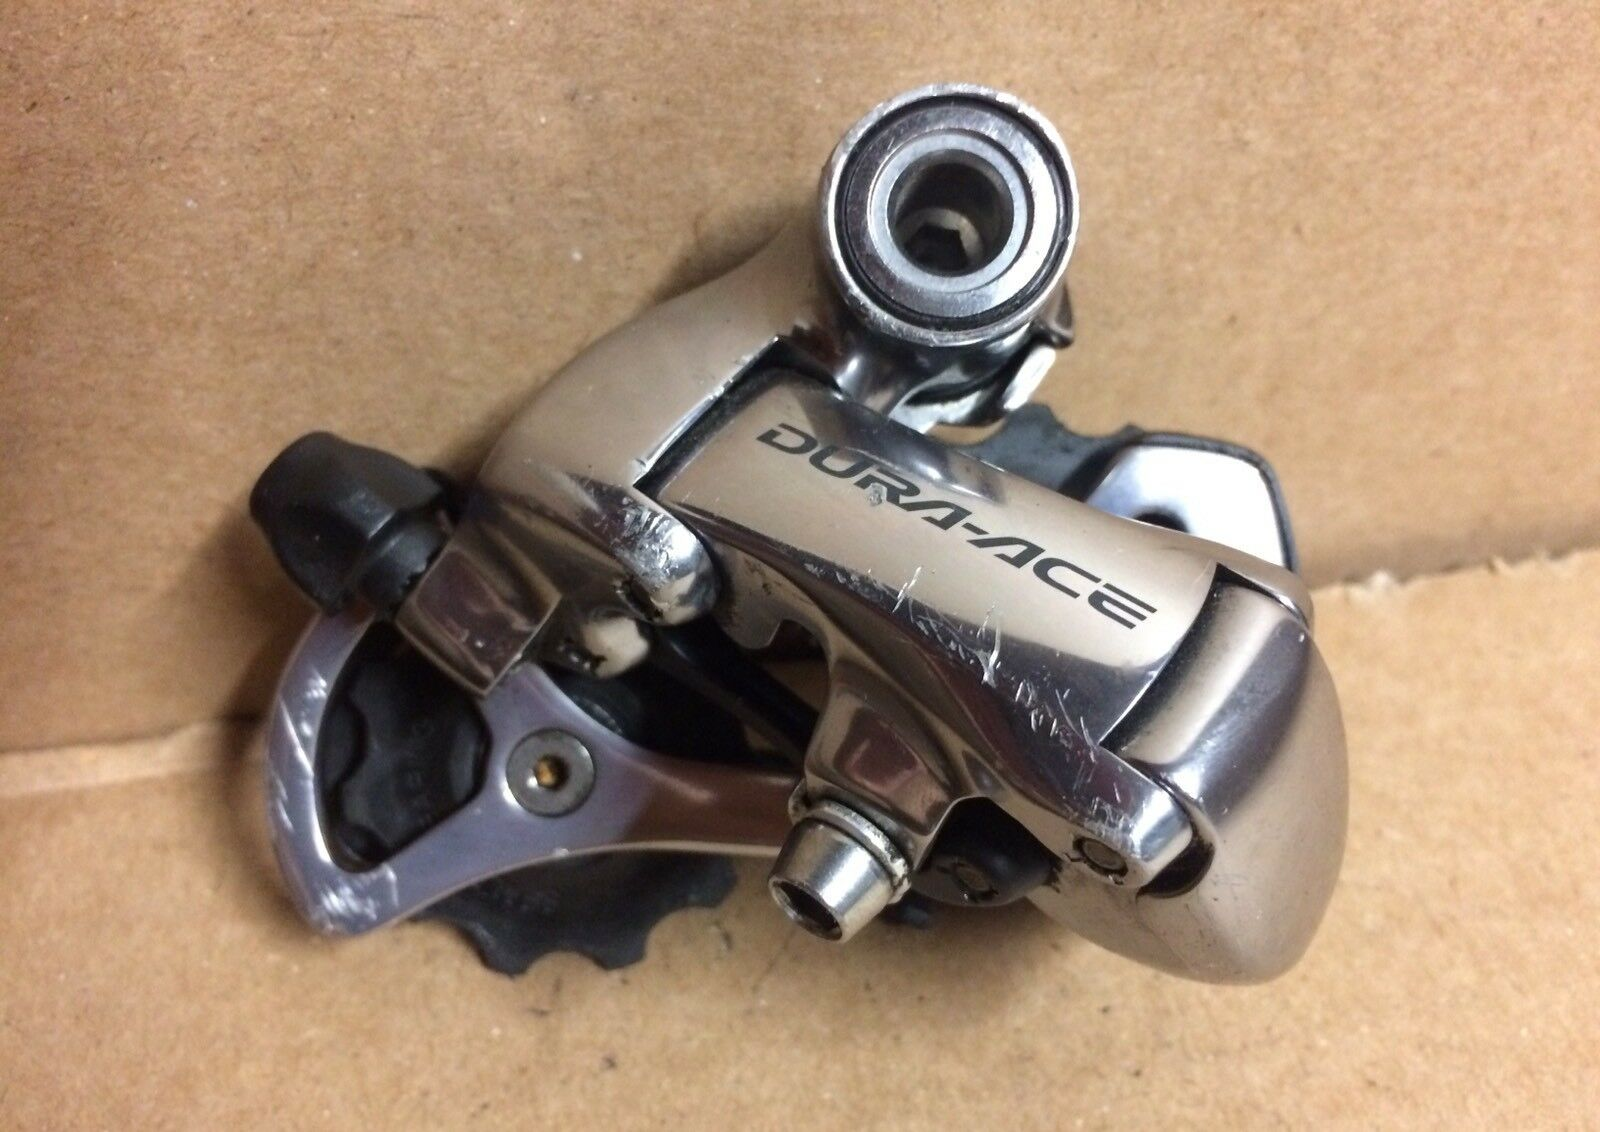 Shimano  Dura Ace RD-7800 10 Speed Short Cage Road Touring Bike Rear Derailleur  fashion brands